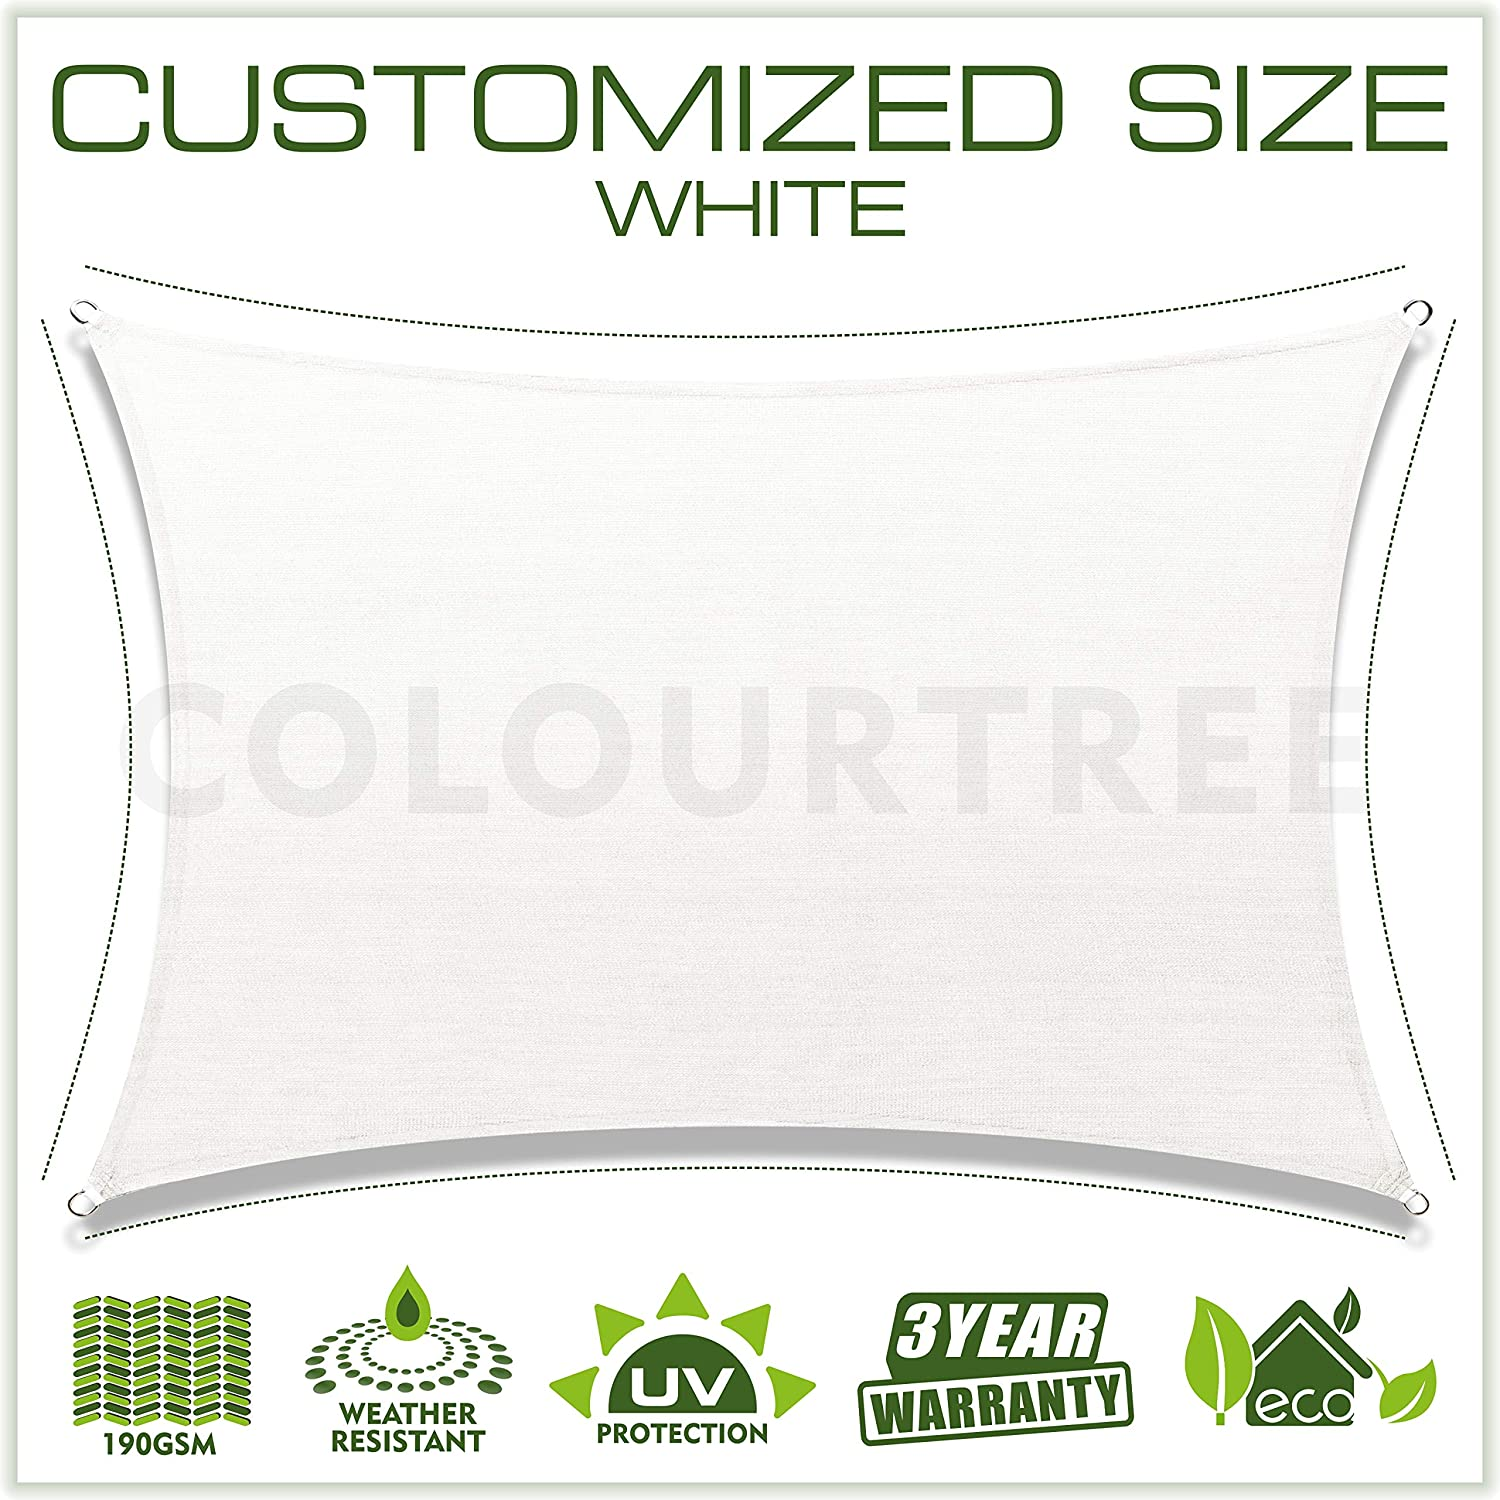 ColourTree Customized Size 12 x 16 White Sun Shade Sail Canopy UV Block Rectangle – Commercial Standard Heavy Duty – 190 GSM – 3 Years Warranty